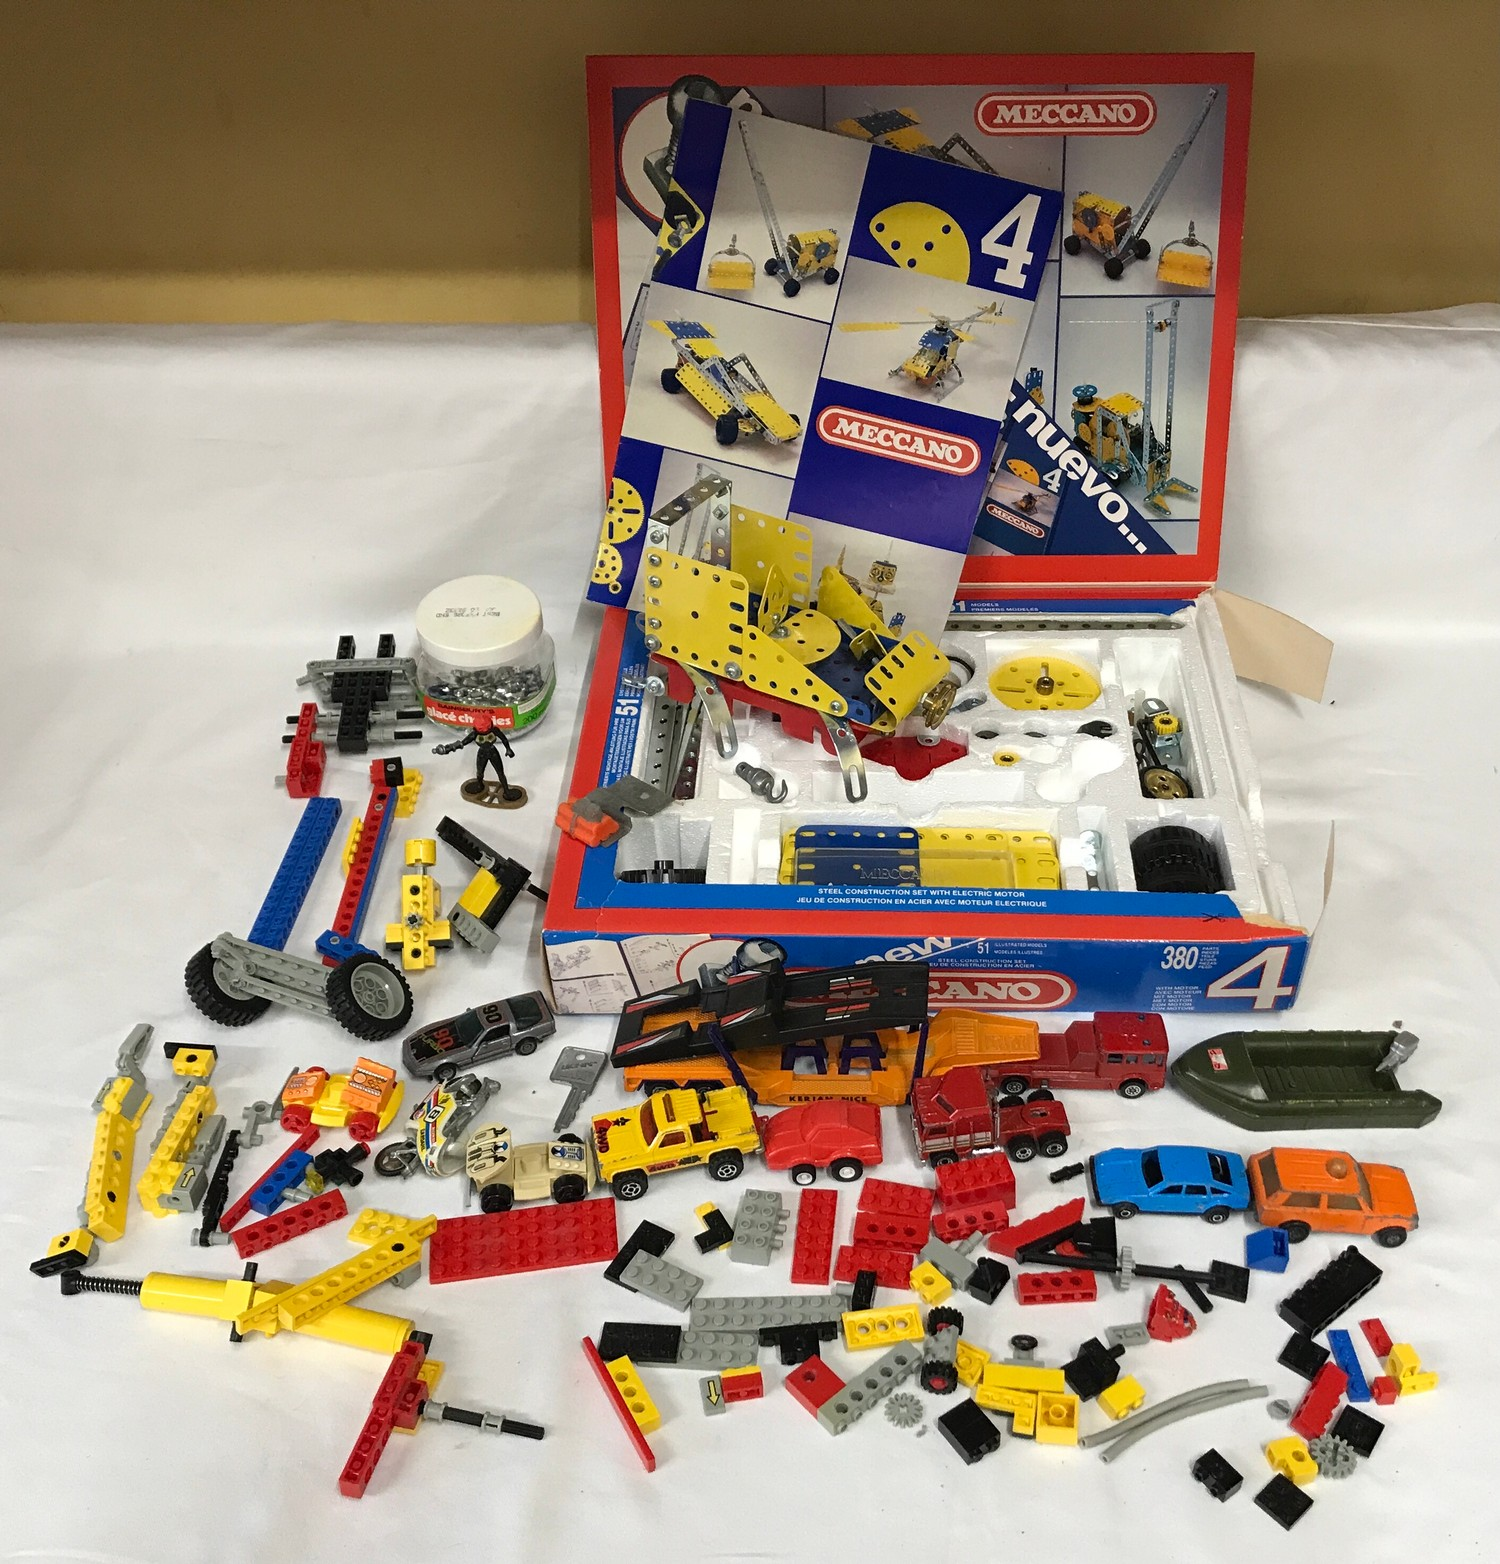 Meccano set number 4, boxed, assorted Lego pieces and plastic vehicles, playworn.Condition